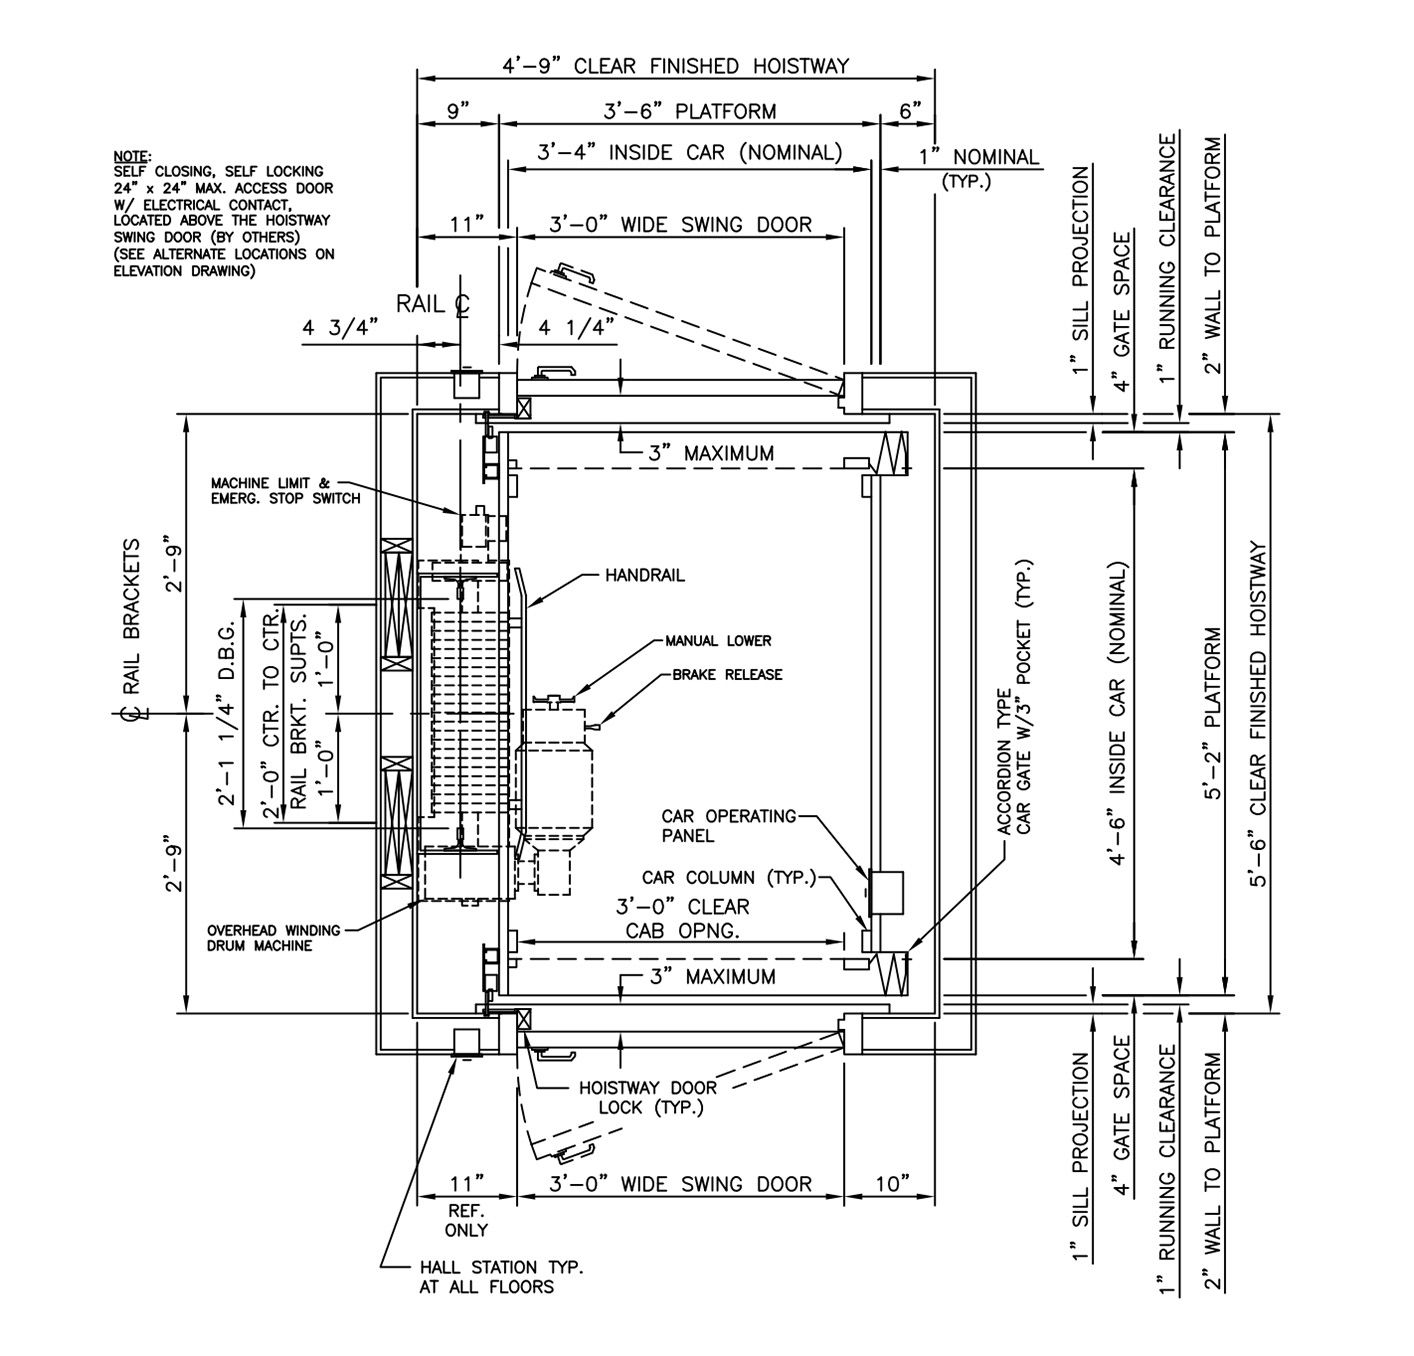 Cable Drive Drawings